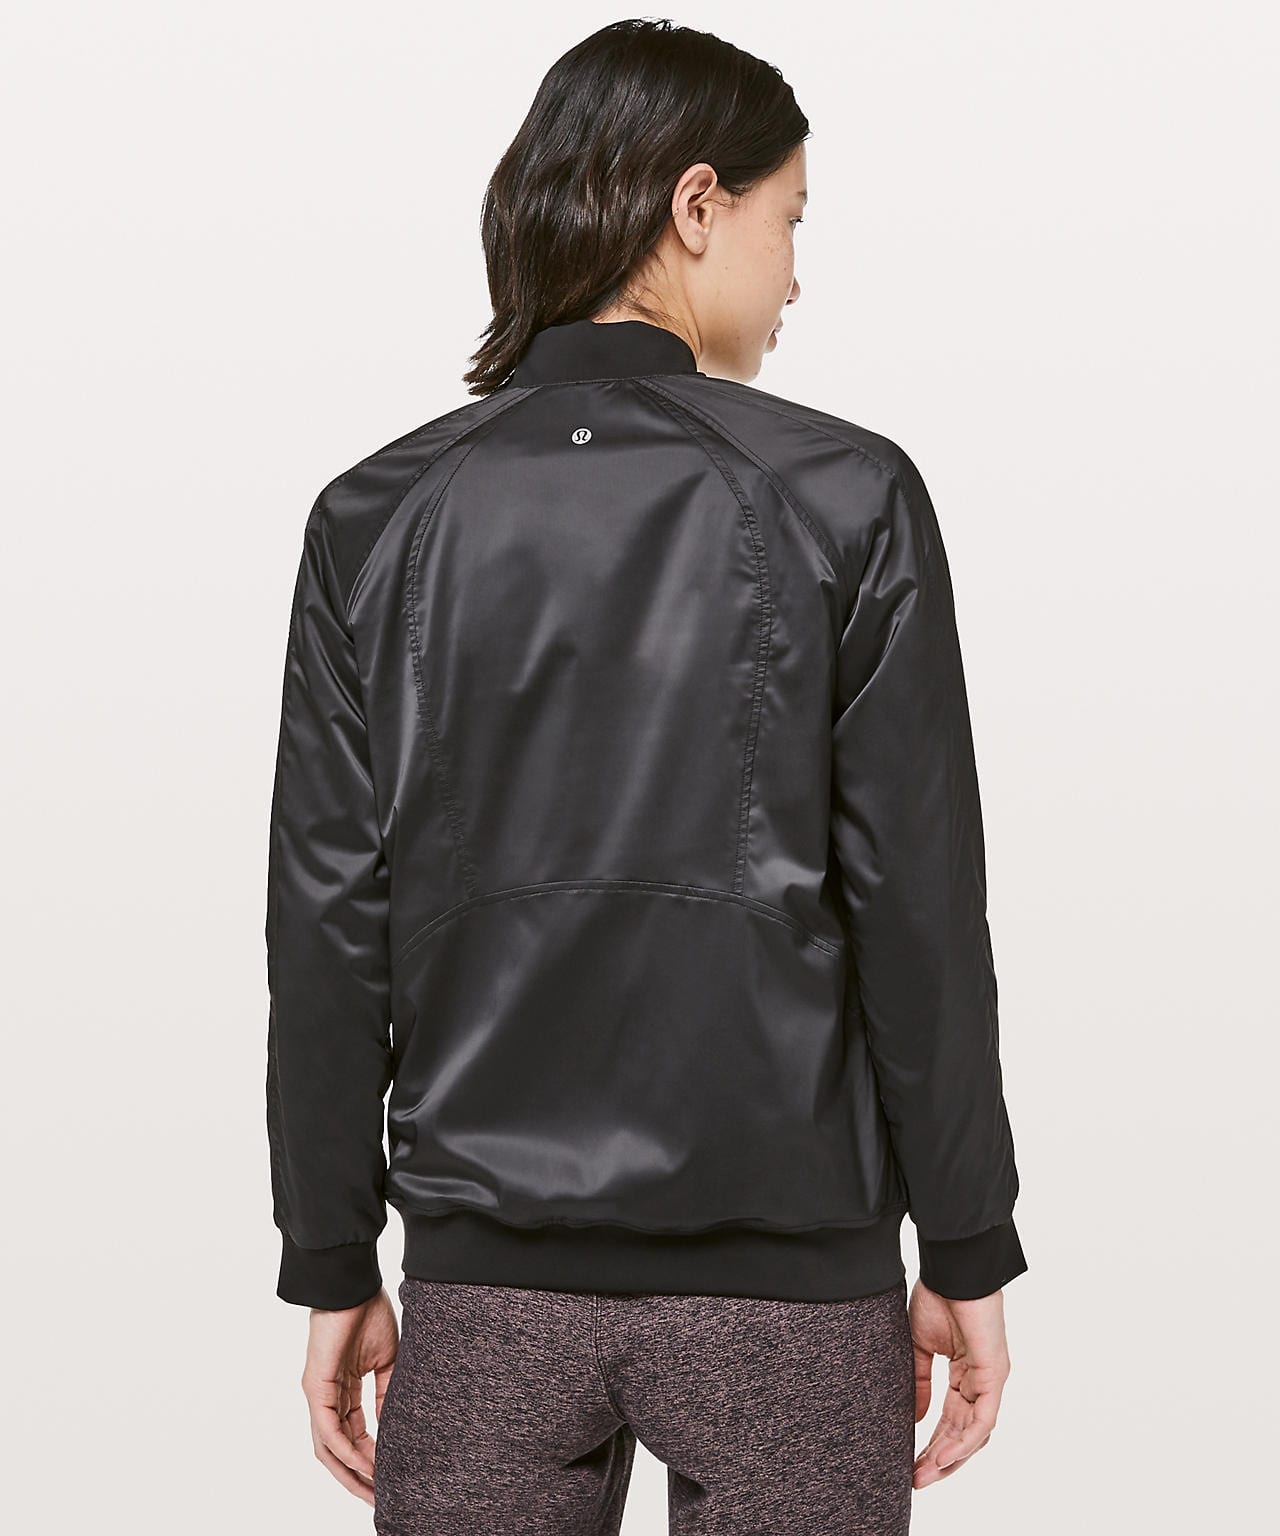 Trace Back Bomber Jacket, Lululemon